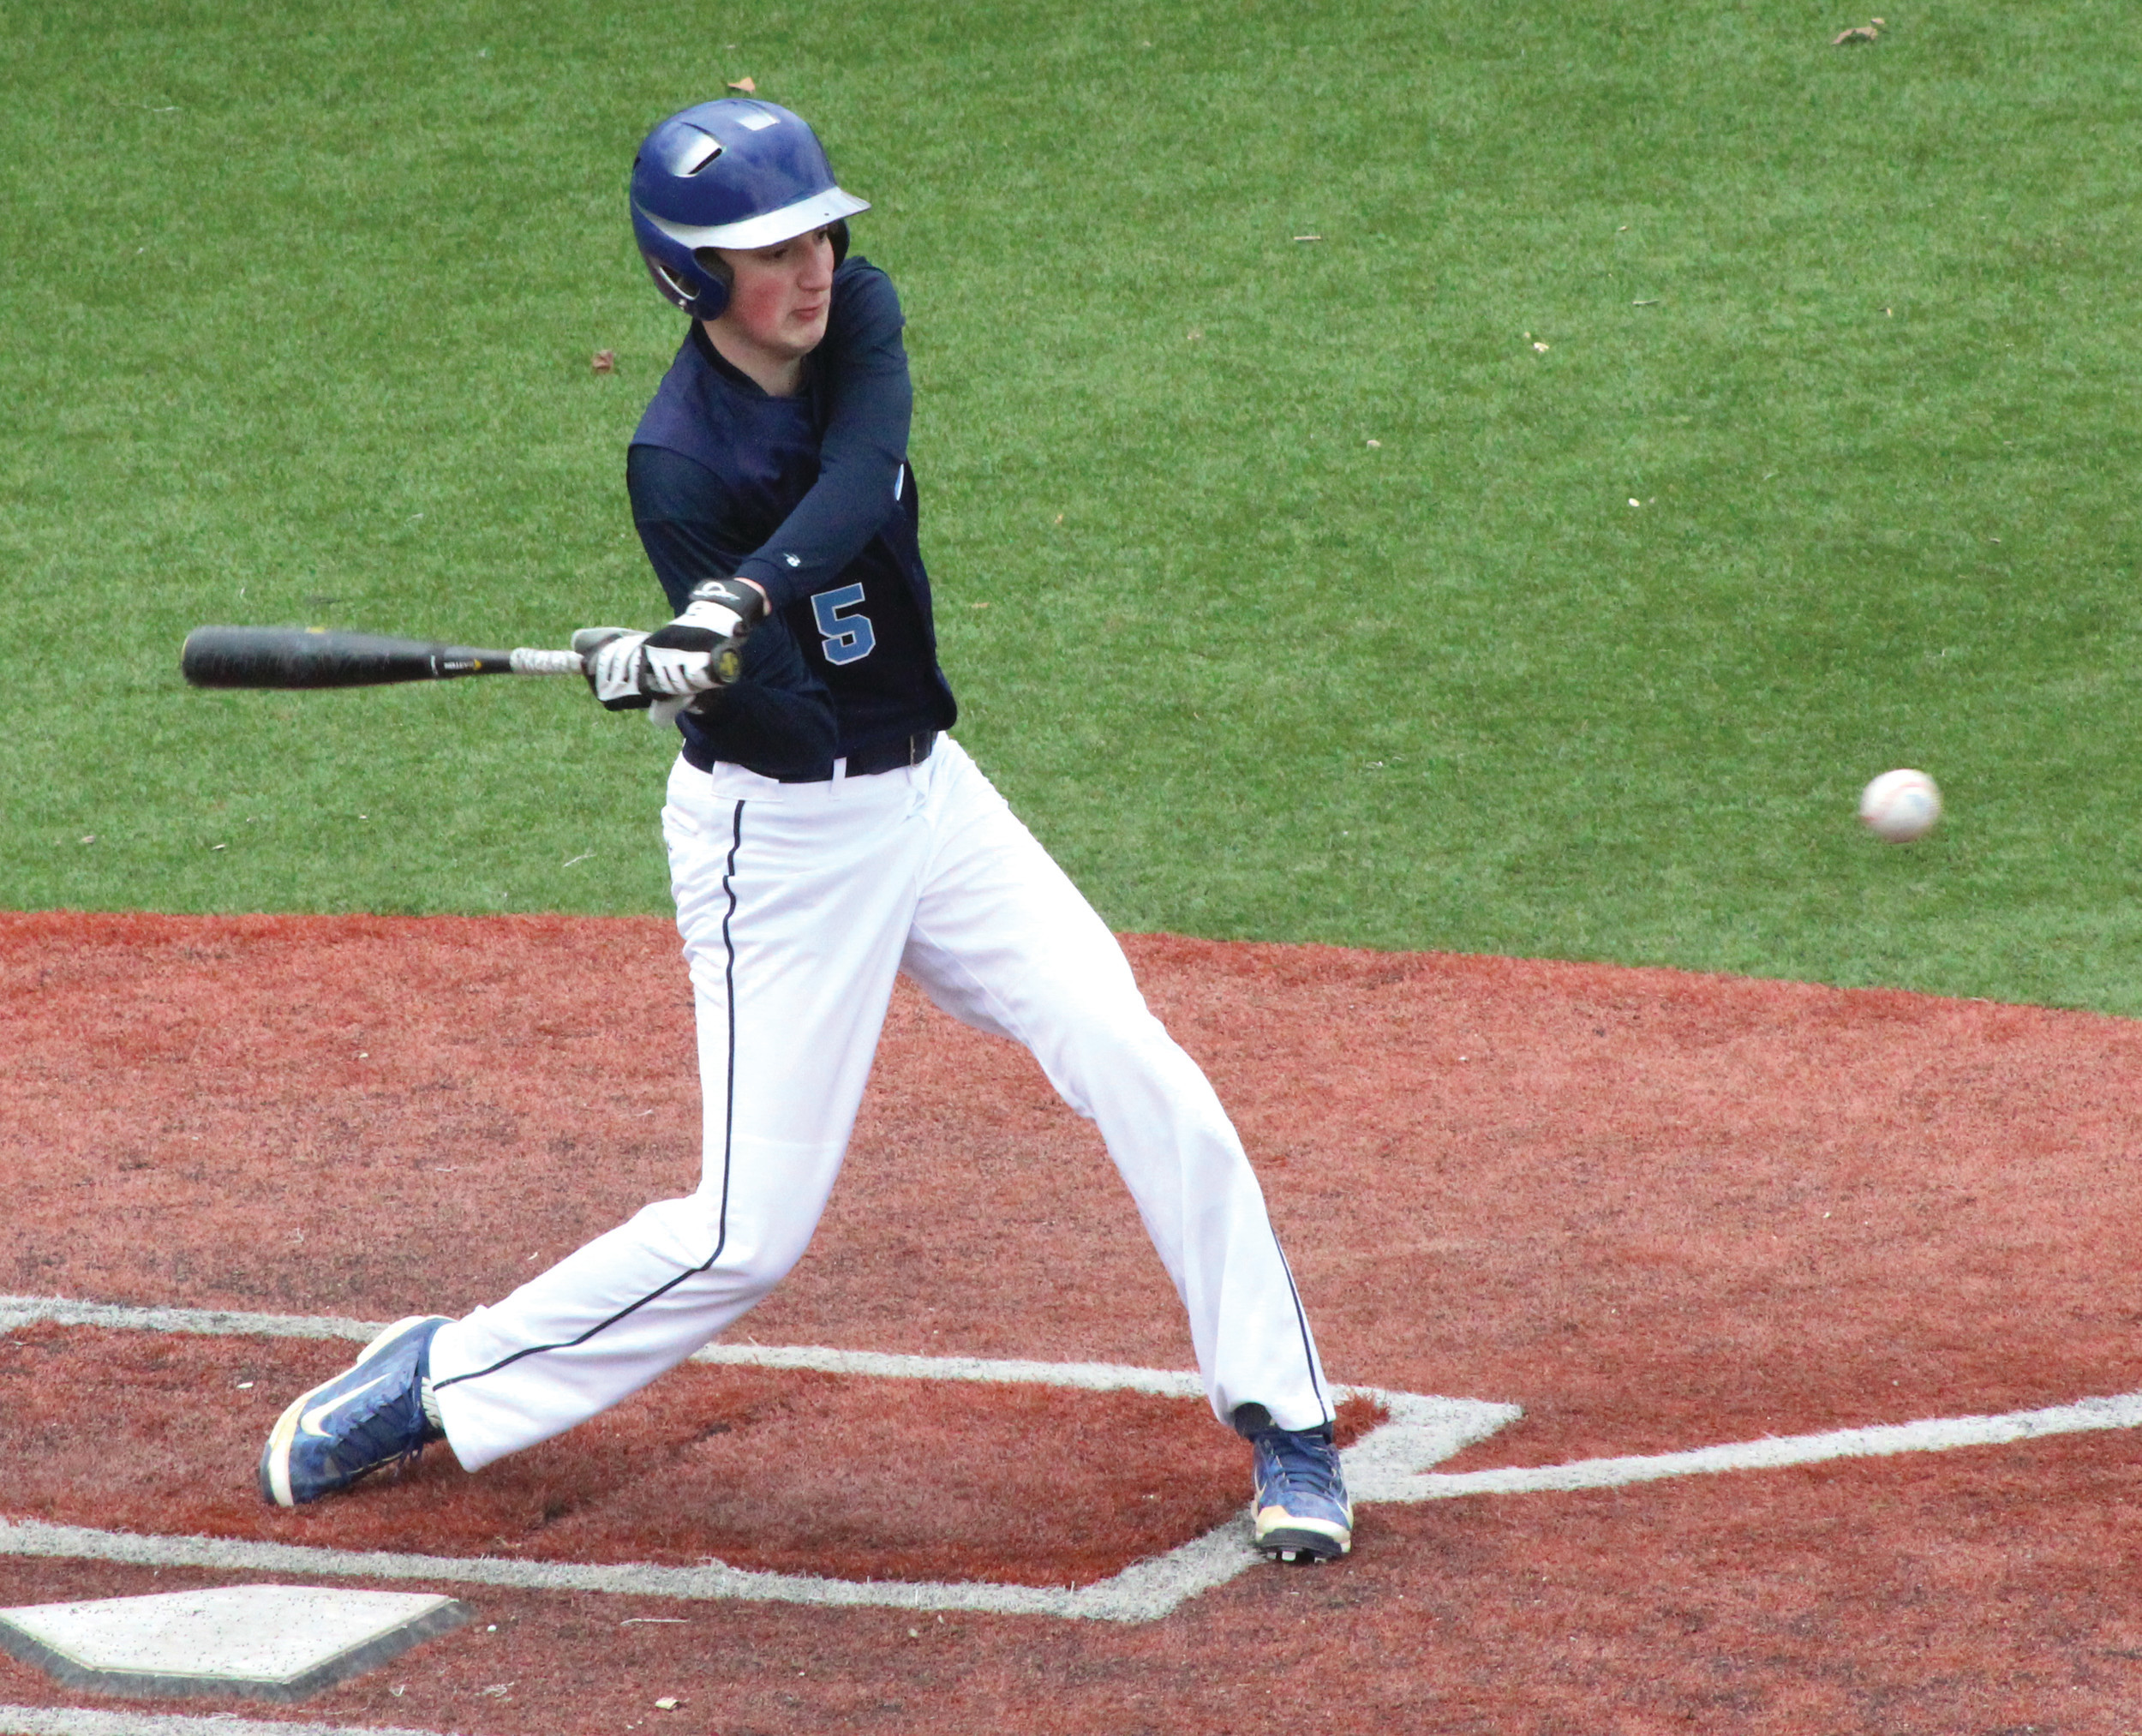 AT THE PLATE: Dylan Lavoie registered a single and a walk in Johnston's 5-0 loss at La Salle.